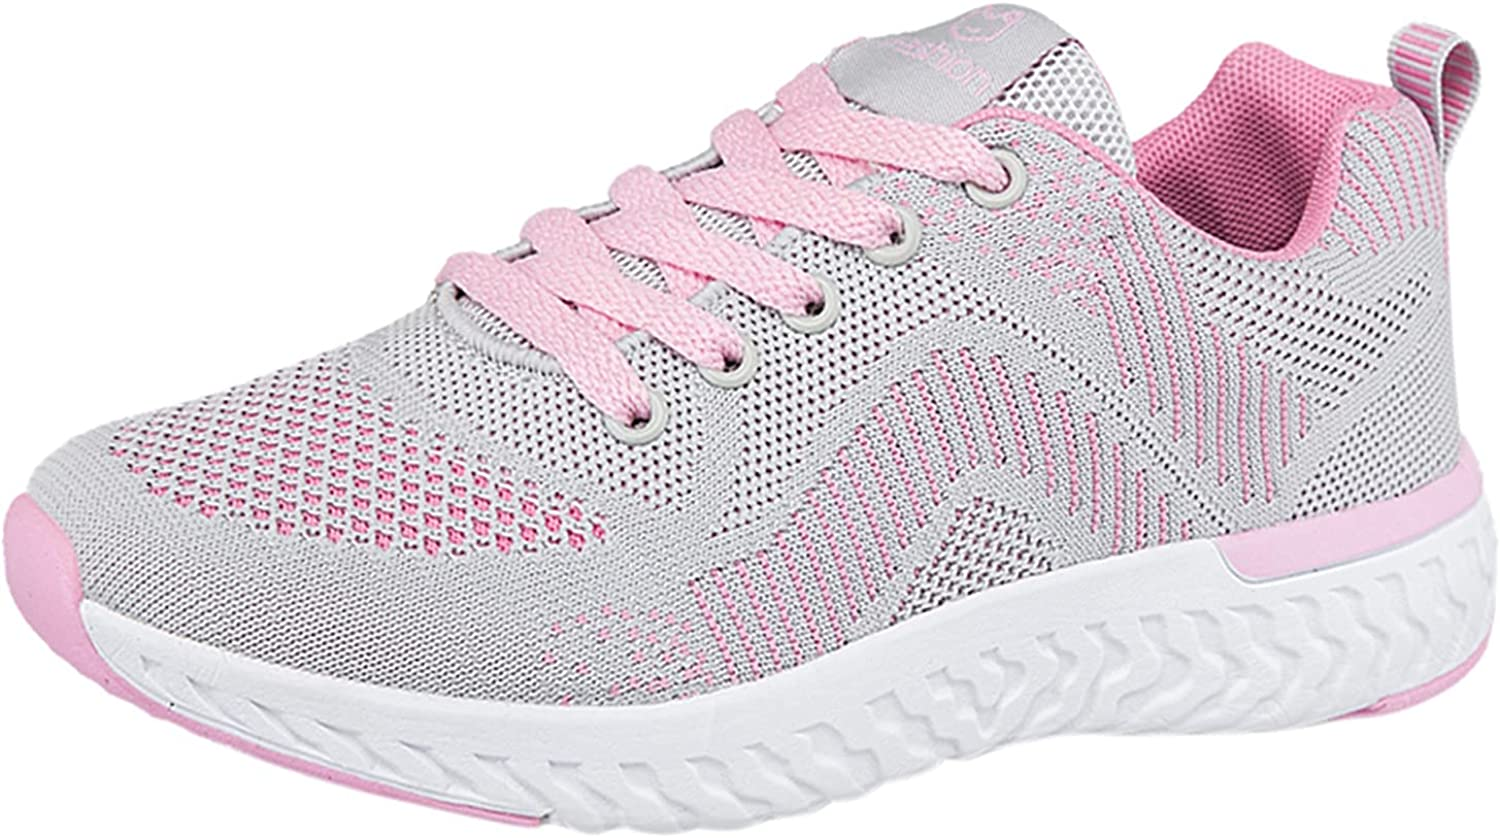 USYFAKGH Sneakers for Women,Lightweight Comfortable Mesh Lace-Up Sports Shoes New Flying Woven Casual Wild Running Shoes Soft Bottom Breathable Sneakers